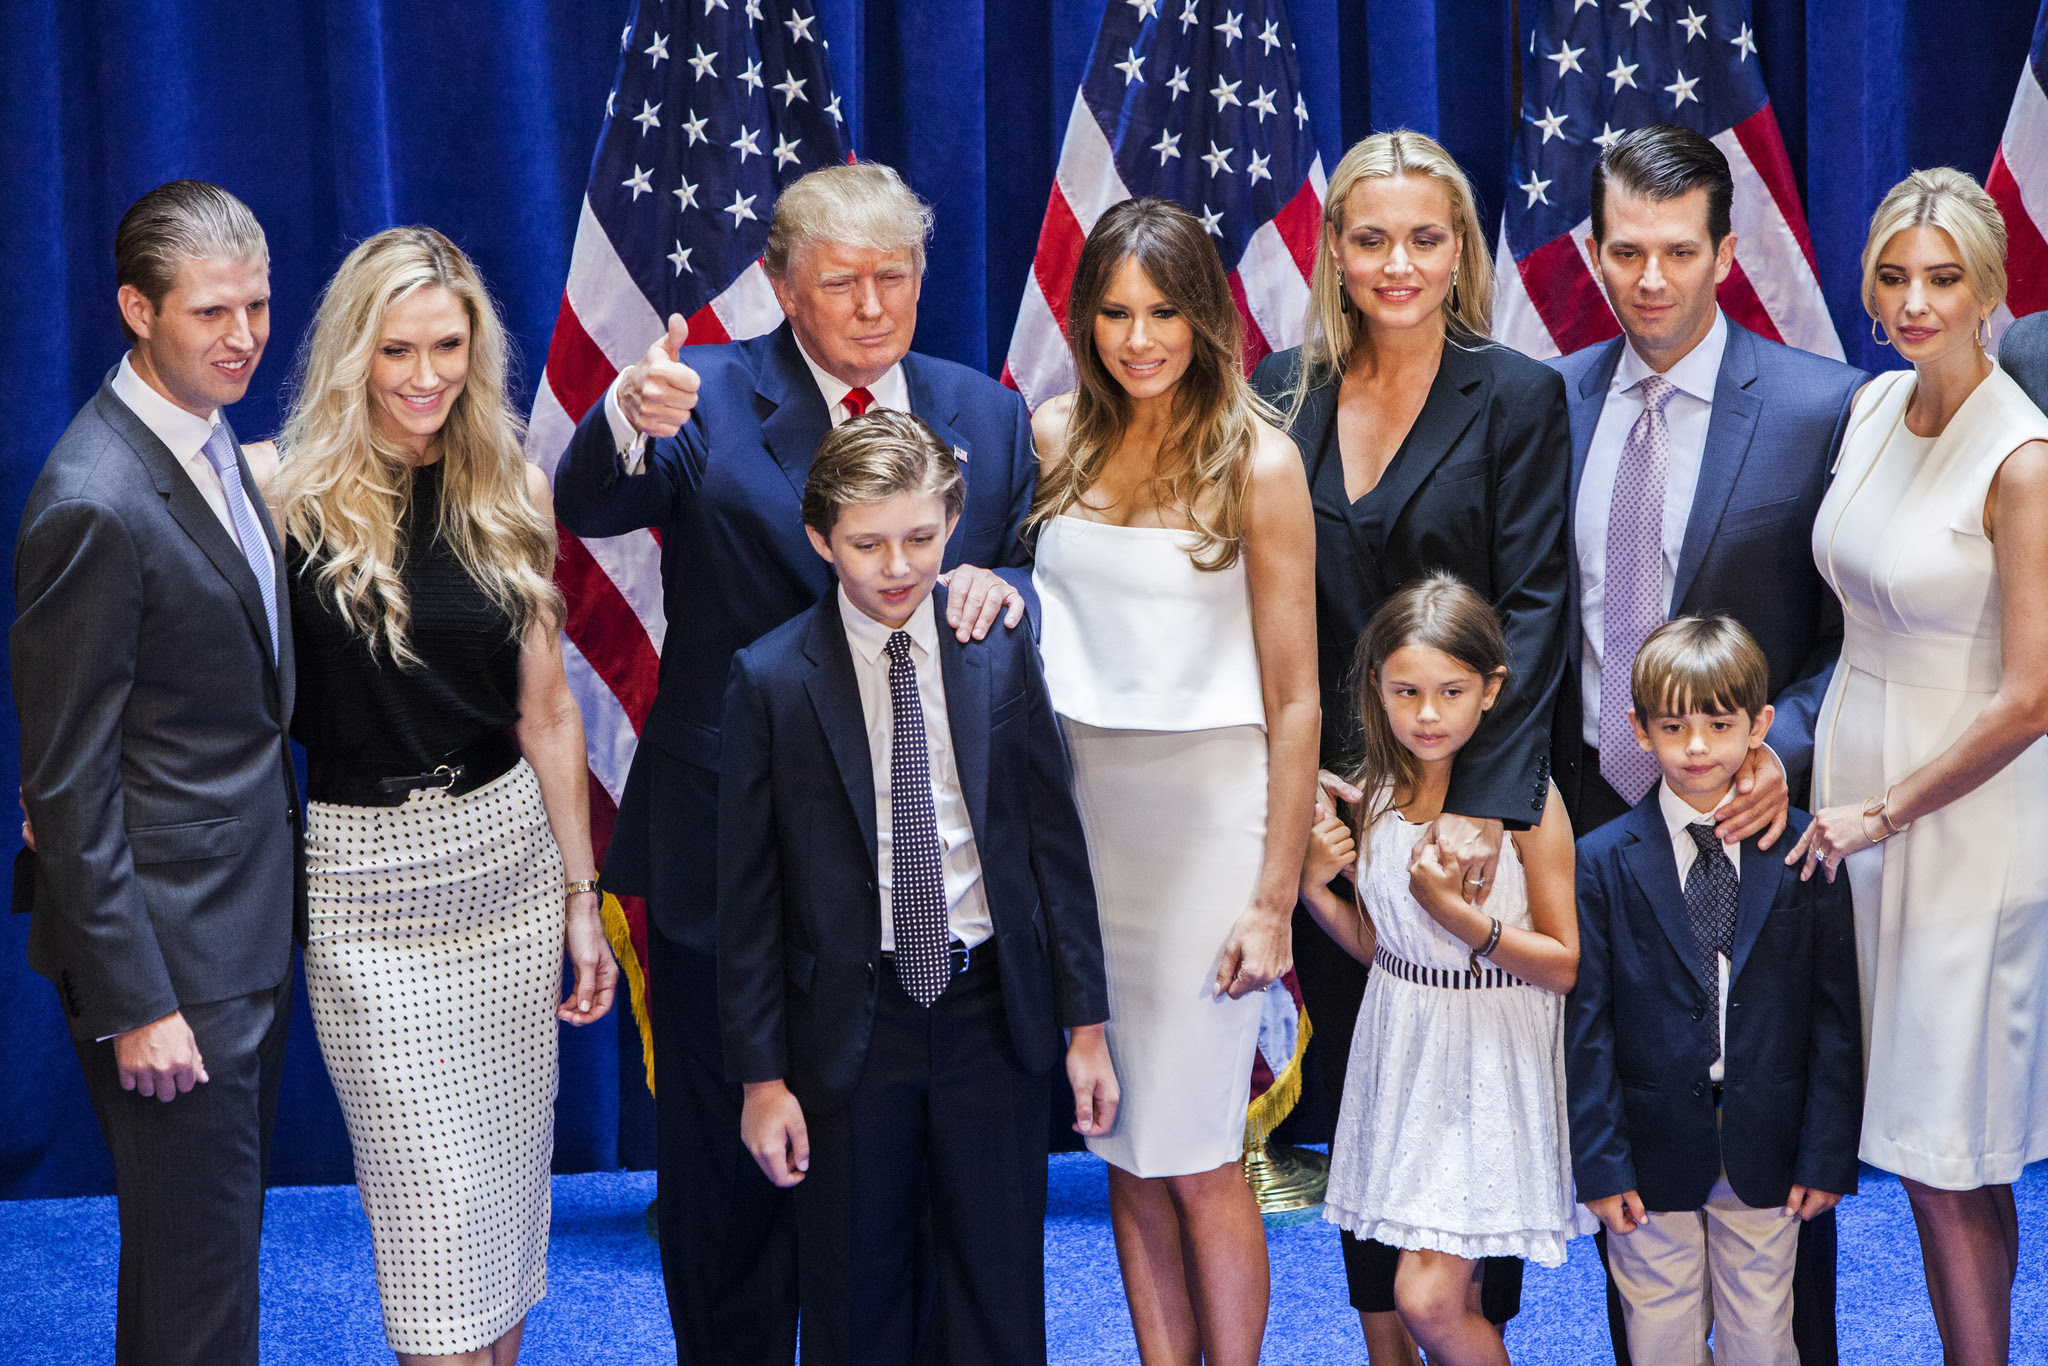 http://www.trbimg.com/img-5580a54d/turbine/la-donald-trump-poses-with-family-after-candidacy-announcement-20150616